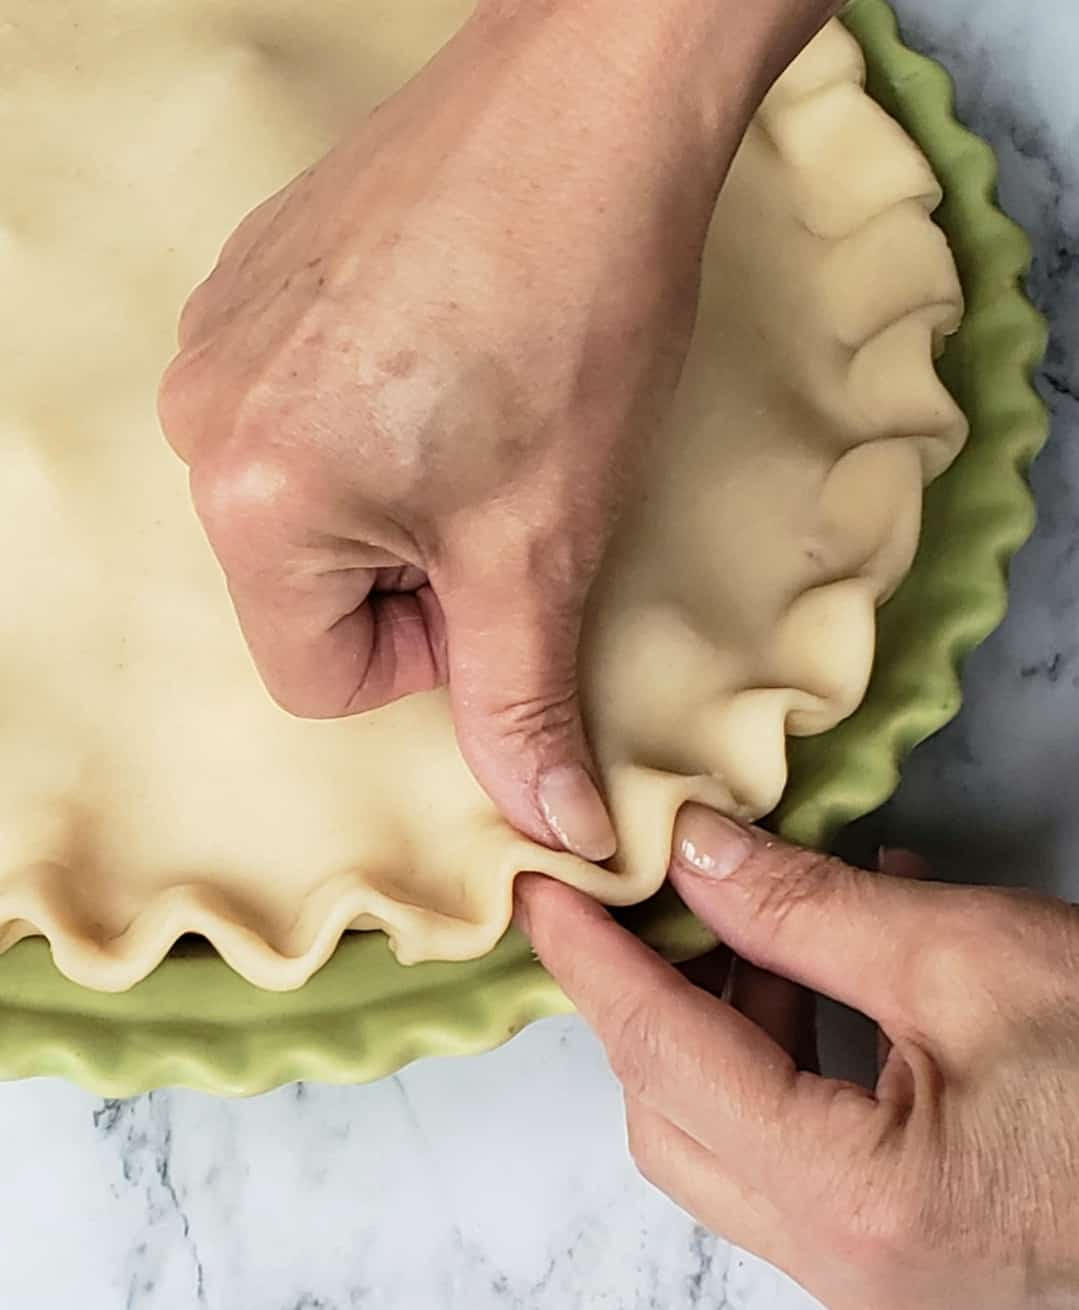 Crimping pie dough with thumb and finger in a green fluted pie dish